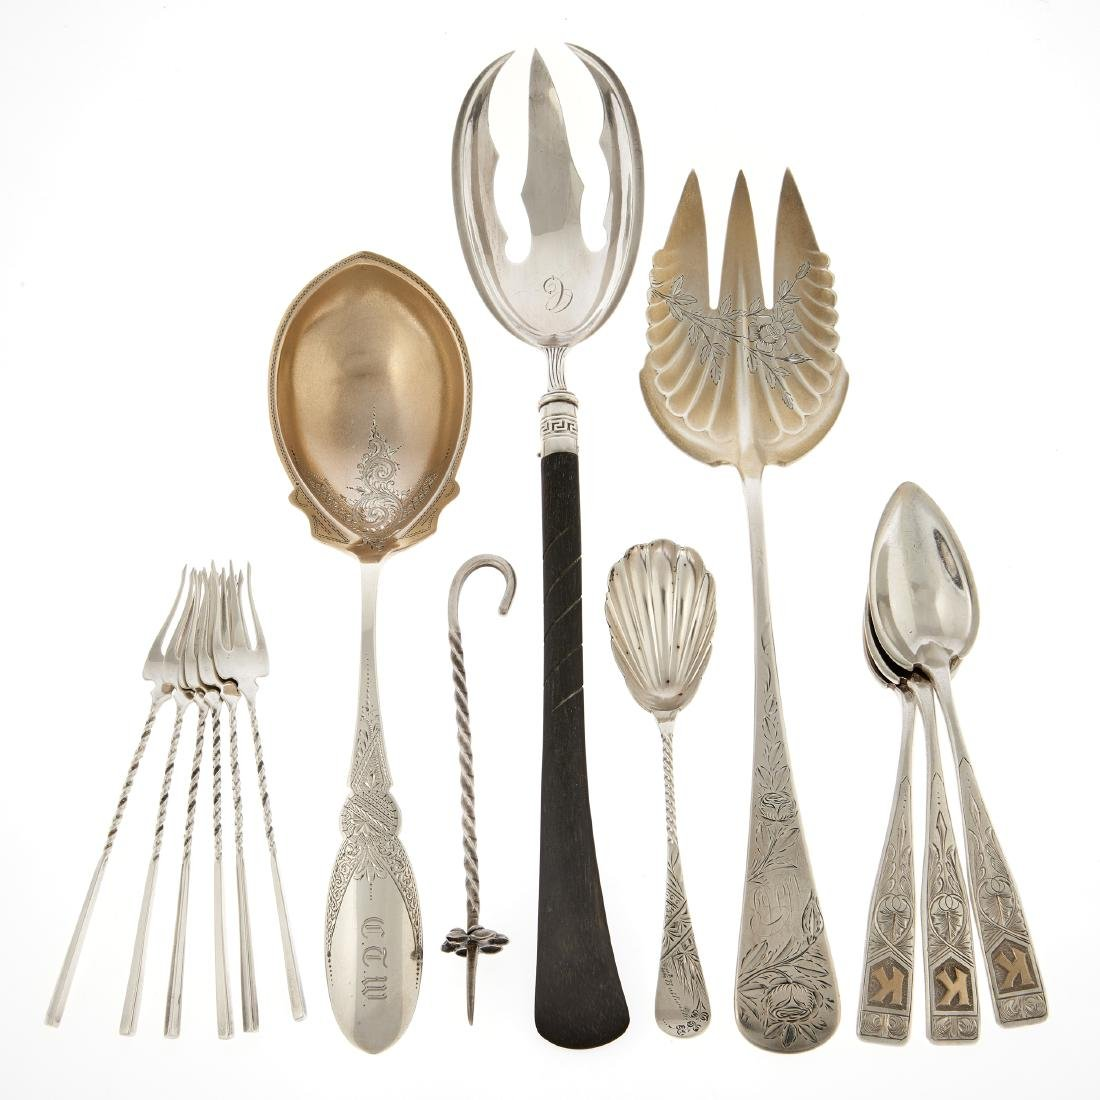 A group of sterling flatware with engraved decoration